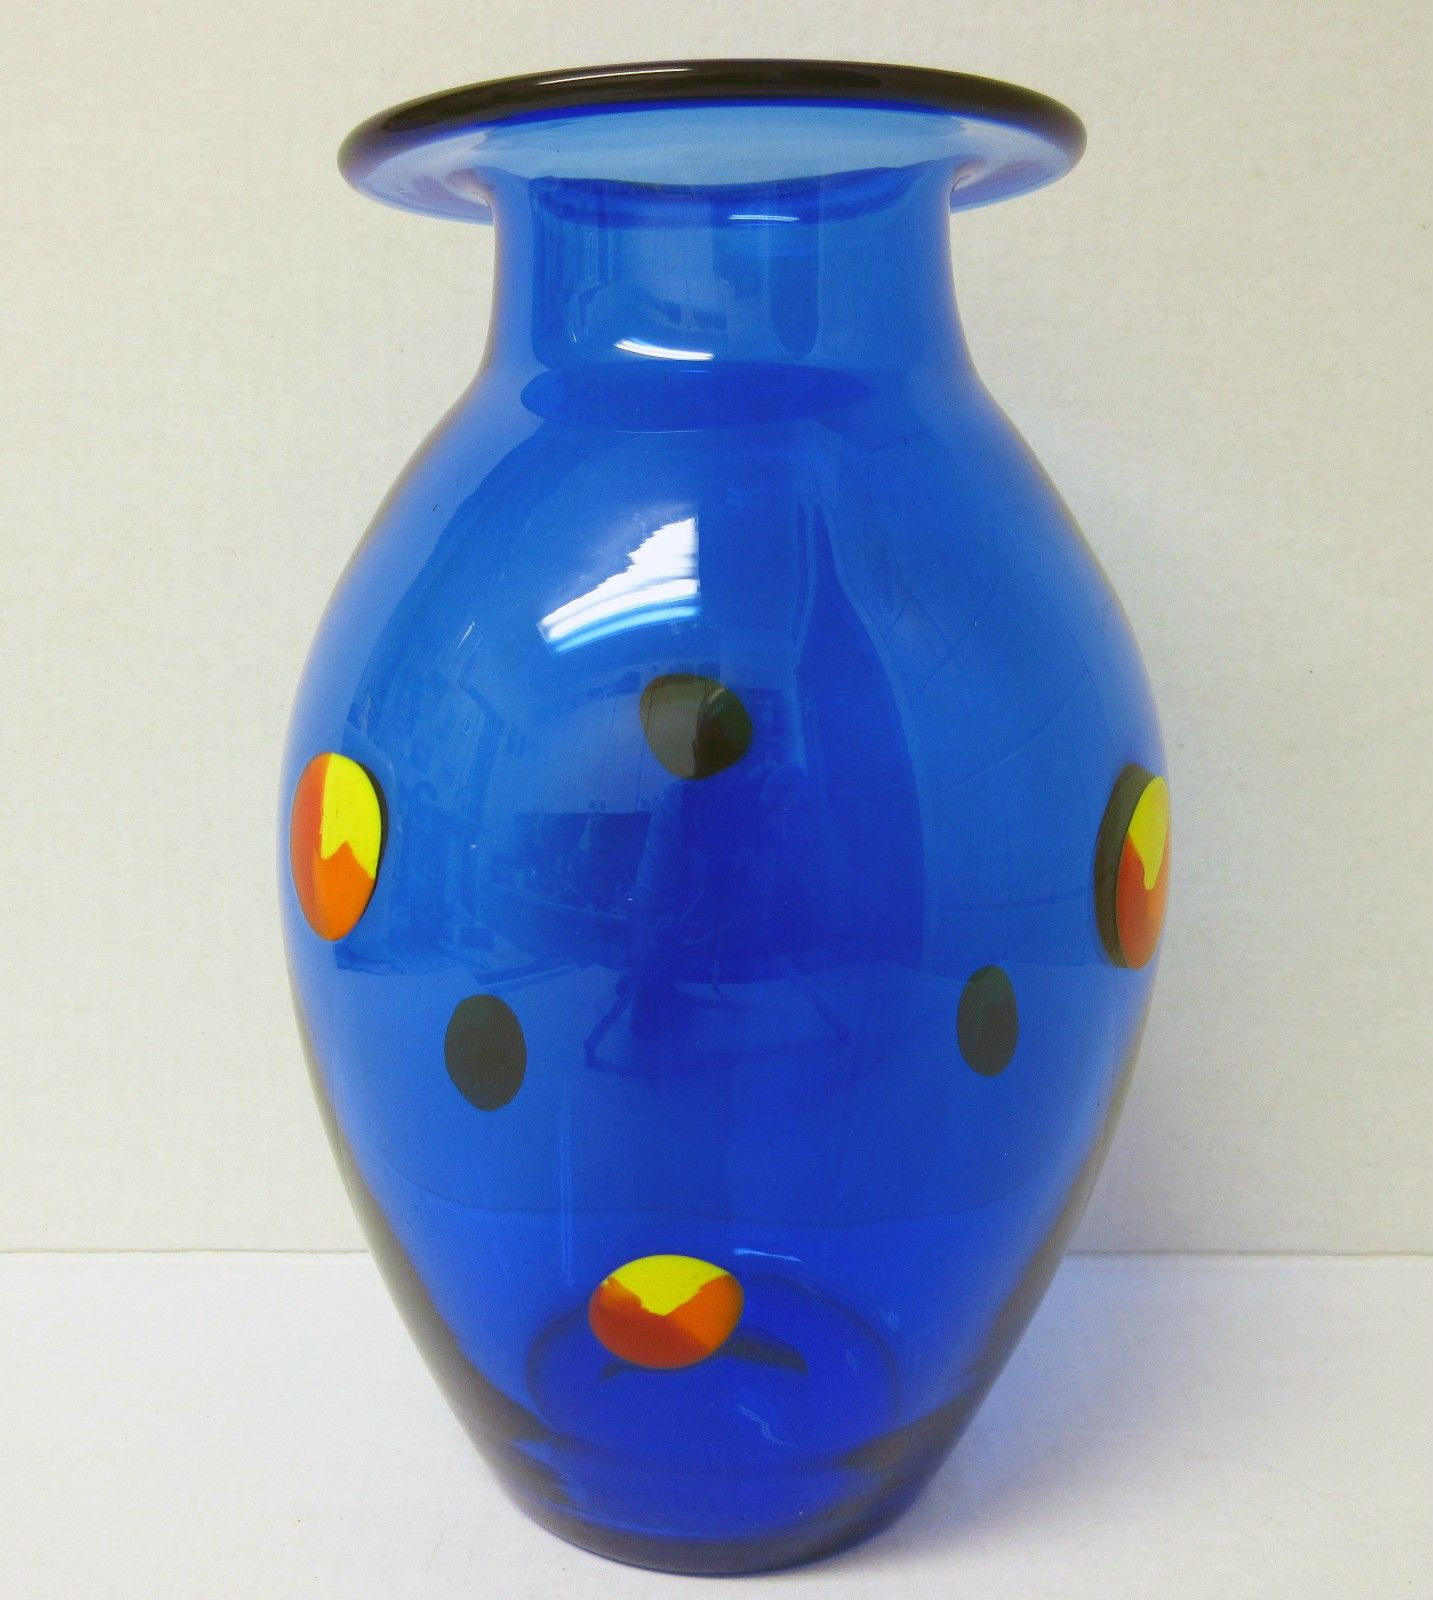 Blue Ceramic Vases Sale Of Cobalt Blue with Multi Color Prunts orrefors Sweden Art Glass Vase with Regard to Cobalt Blue with Multi Color Prunts orrefors Sweden Art Glass Vase Measures Approximately 8 1 2″ X 5″ Sand Blasted Etched Signature On the Base